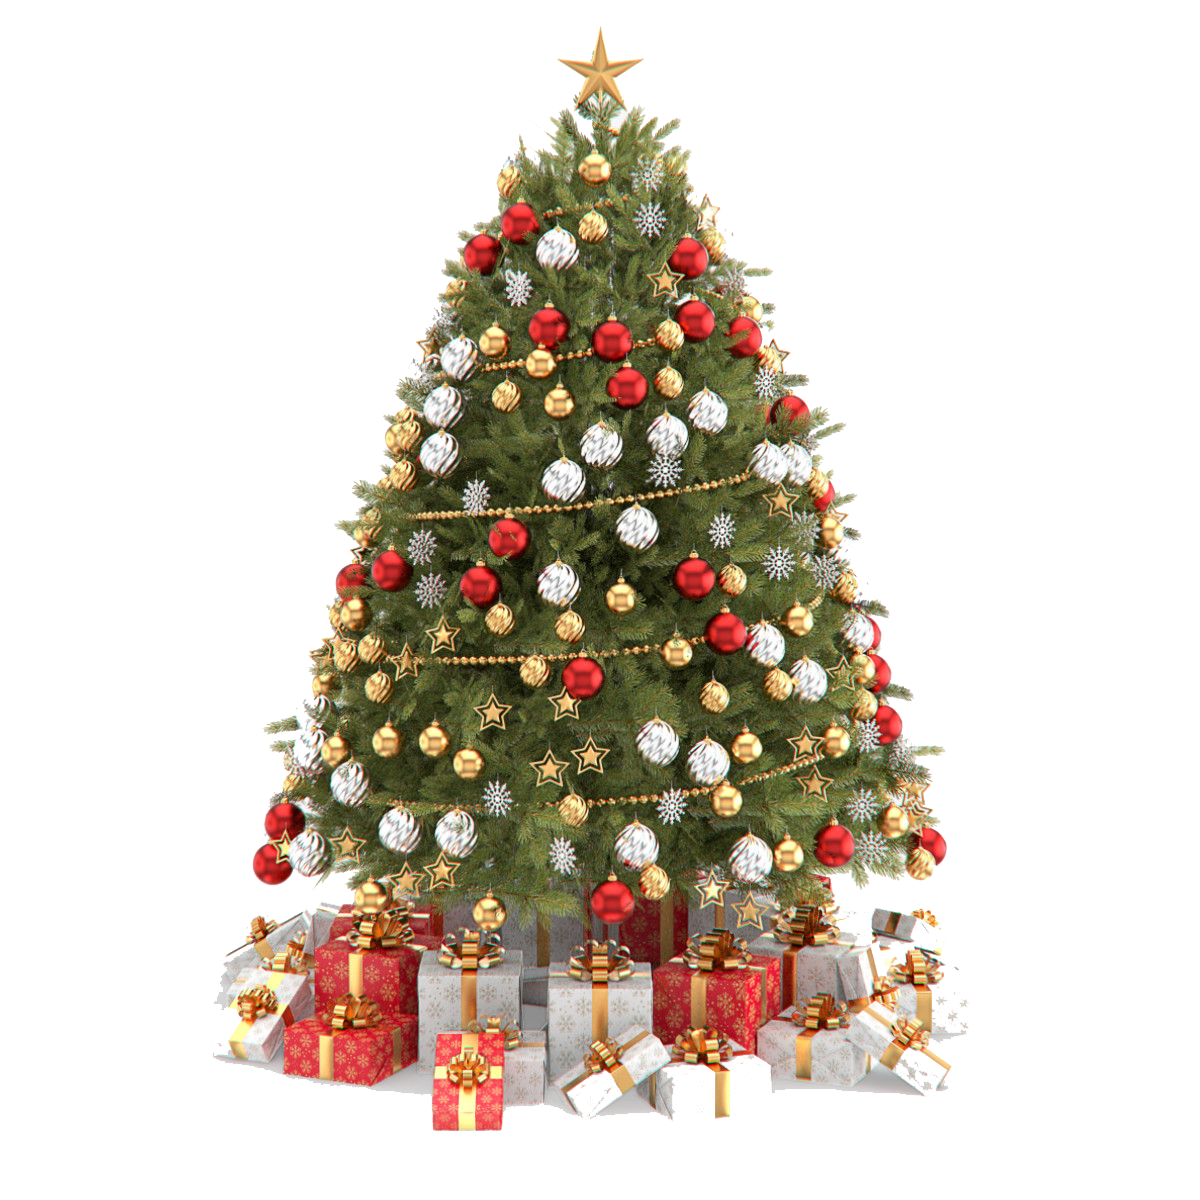 Christmas Tree Png Transparent Christmas Tree Png Images Pluspng